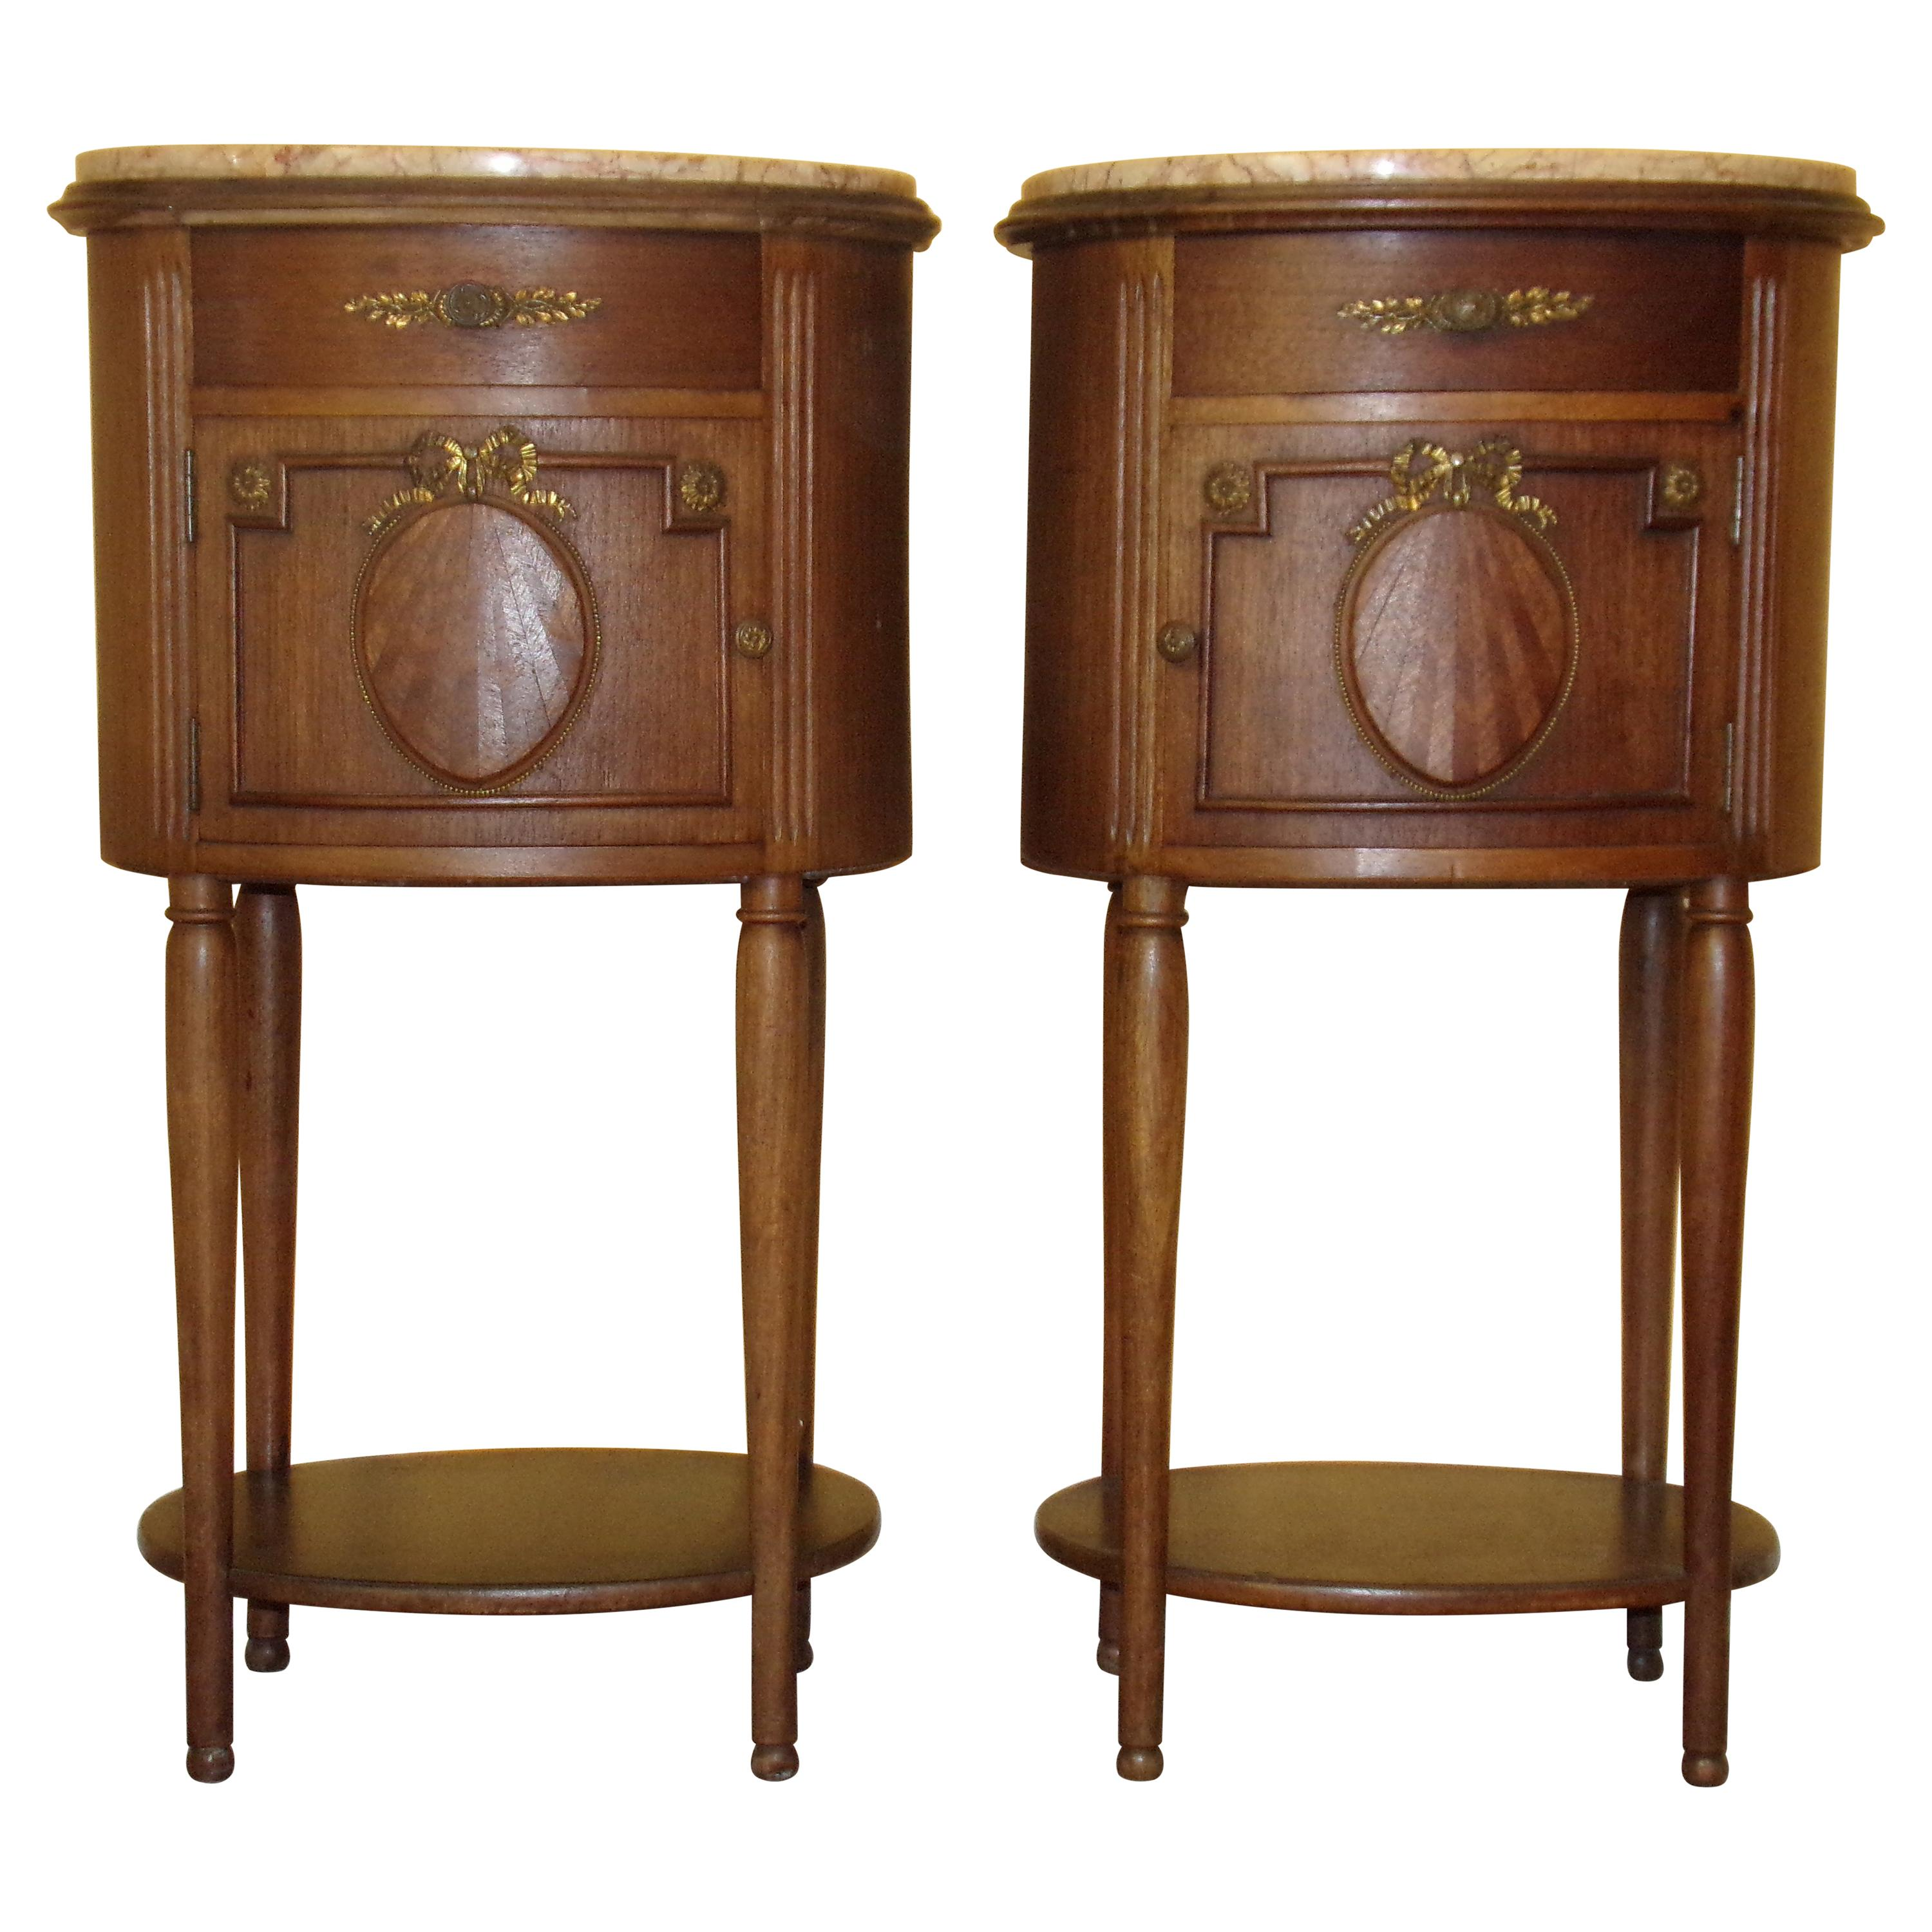 Pair of Empire Bedside Cabinets